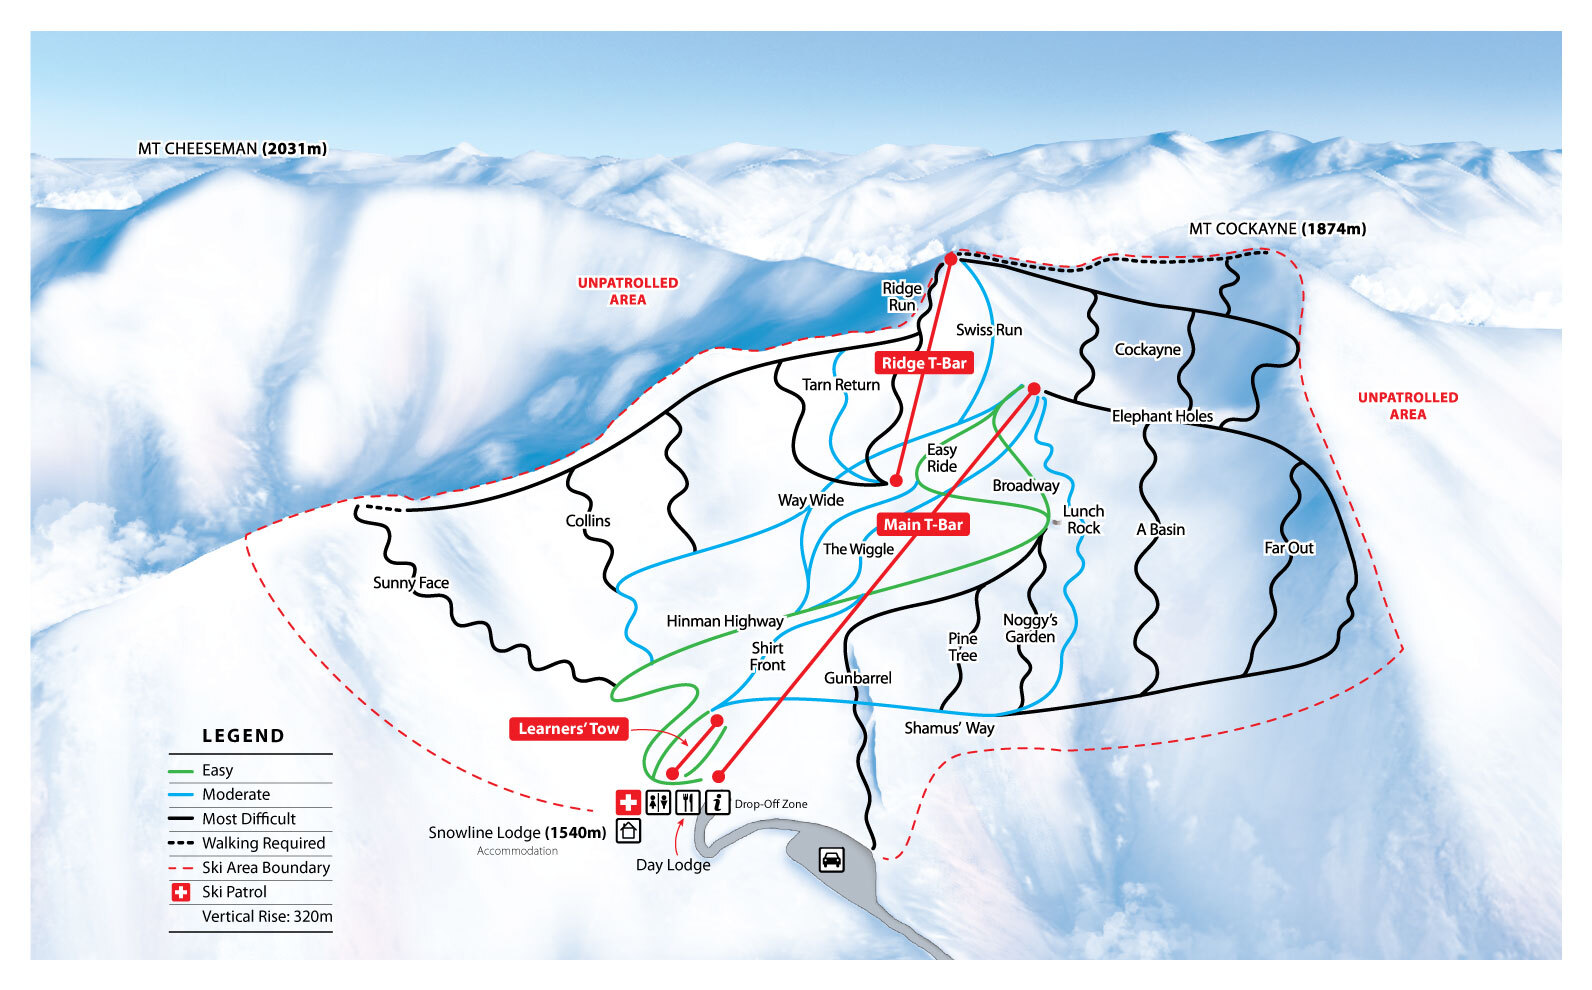 Mount Cheeseman Piste / Trail Map